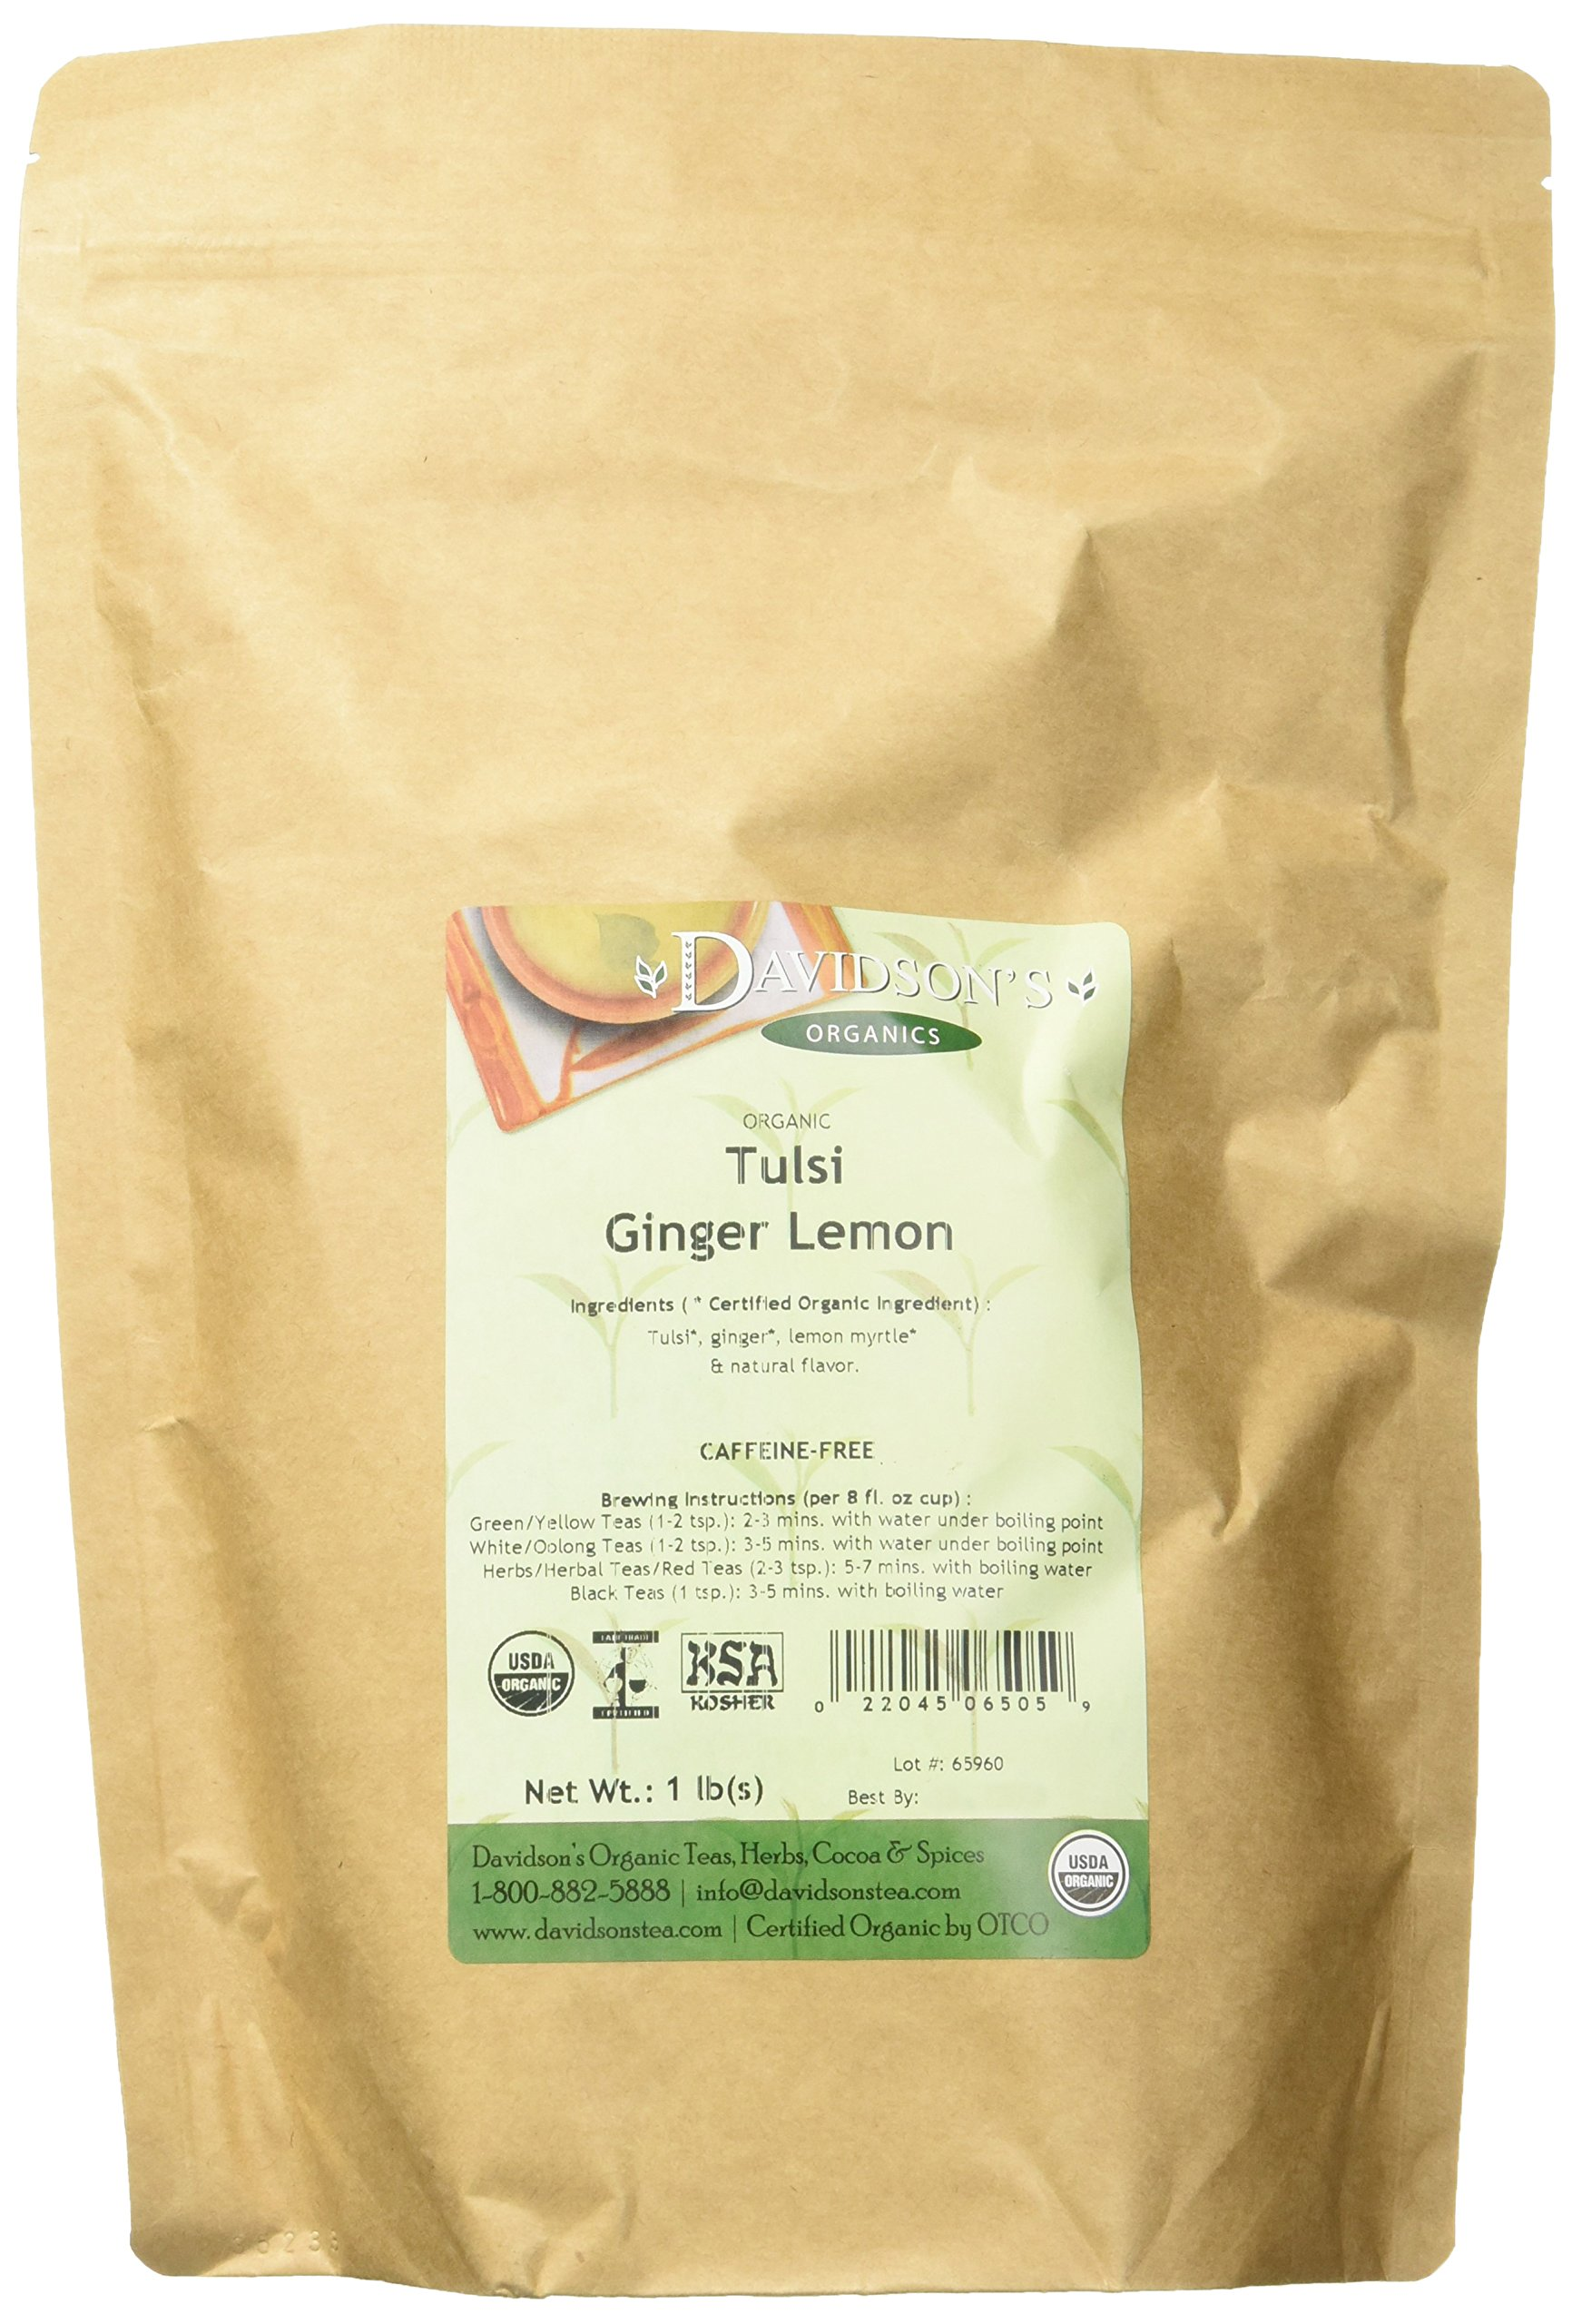 Davidson's Tea Bulk, Tulsi Ginger Lemon, 16-Ounce Bag